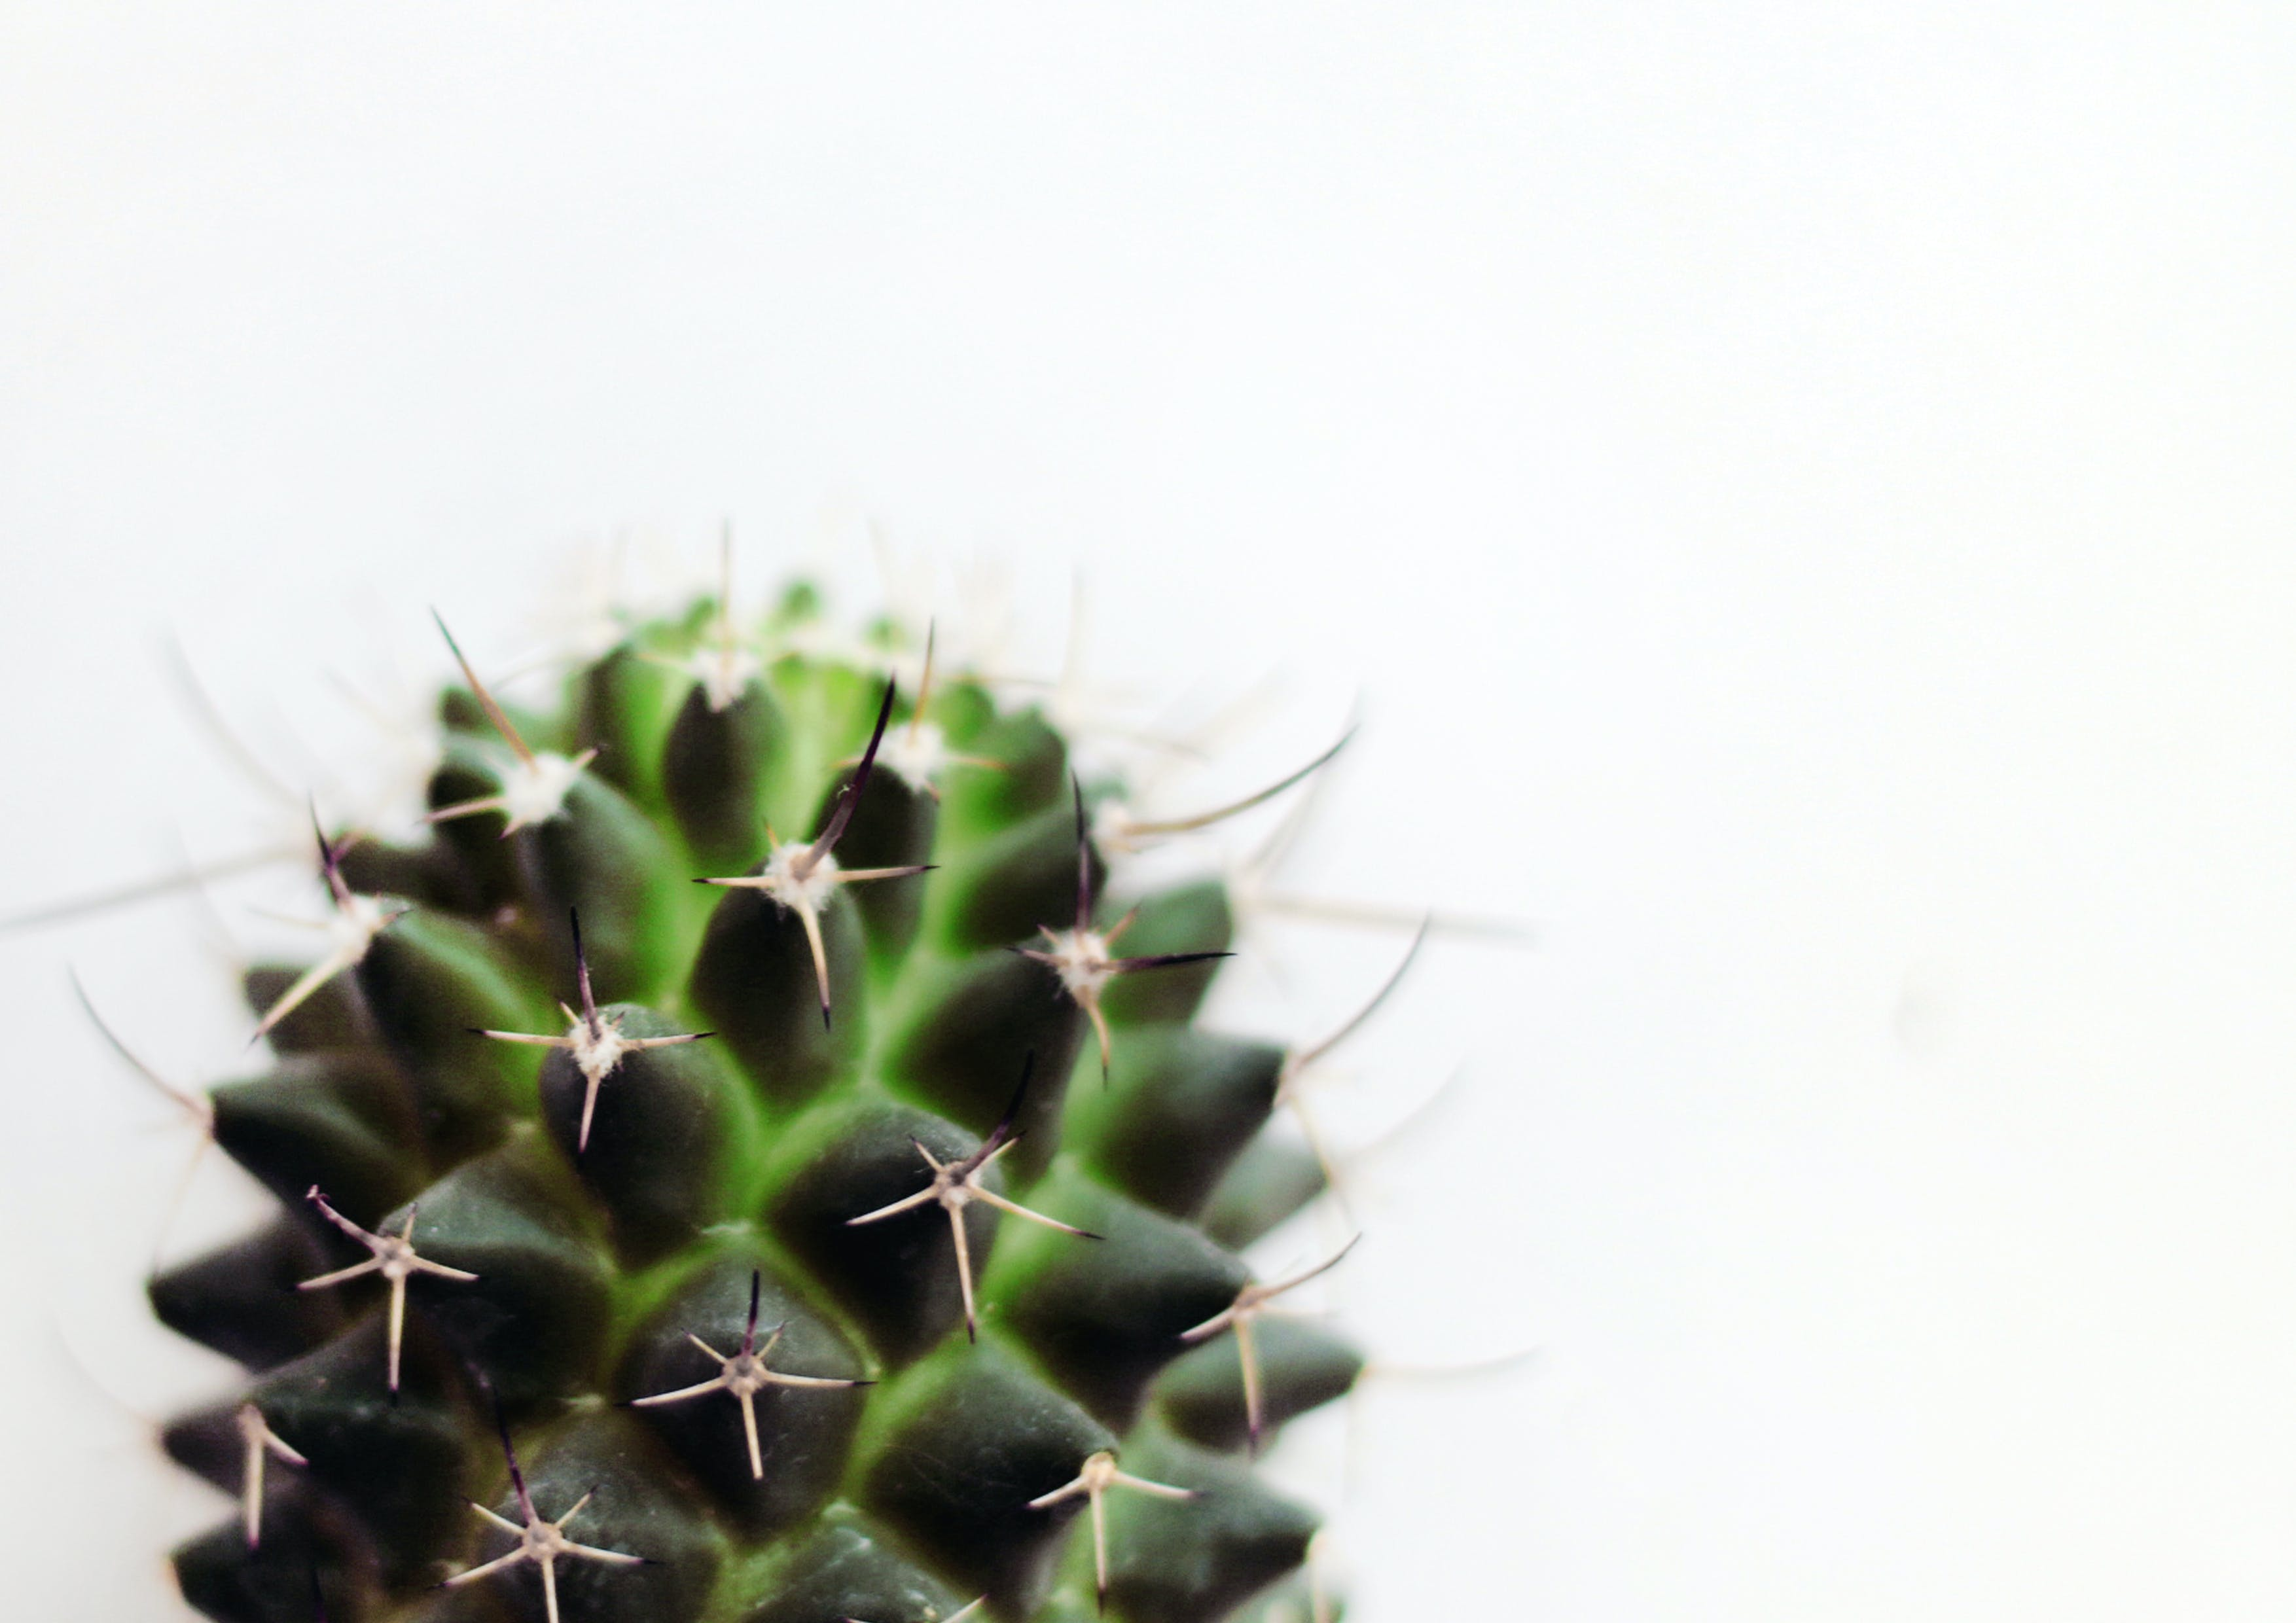 Micro Photography of Green Cactus Plant